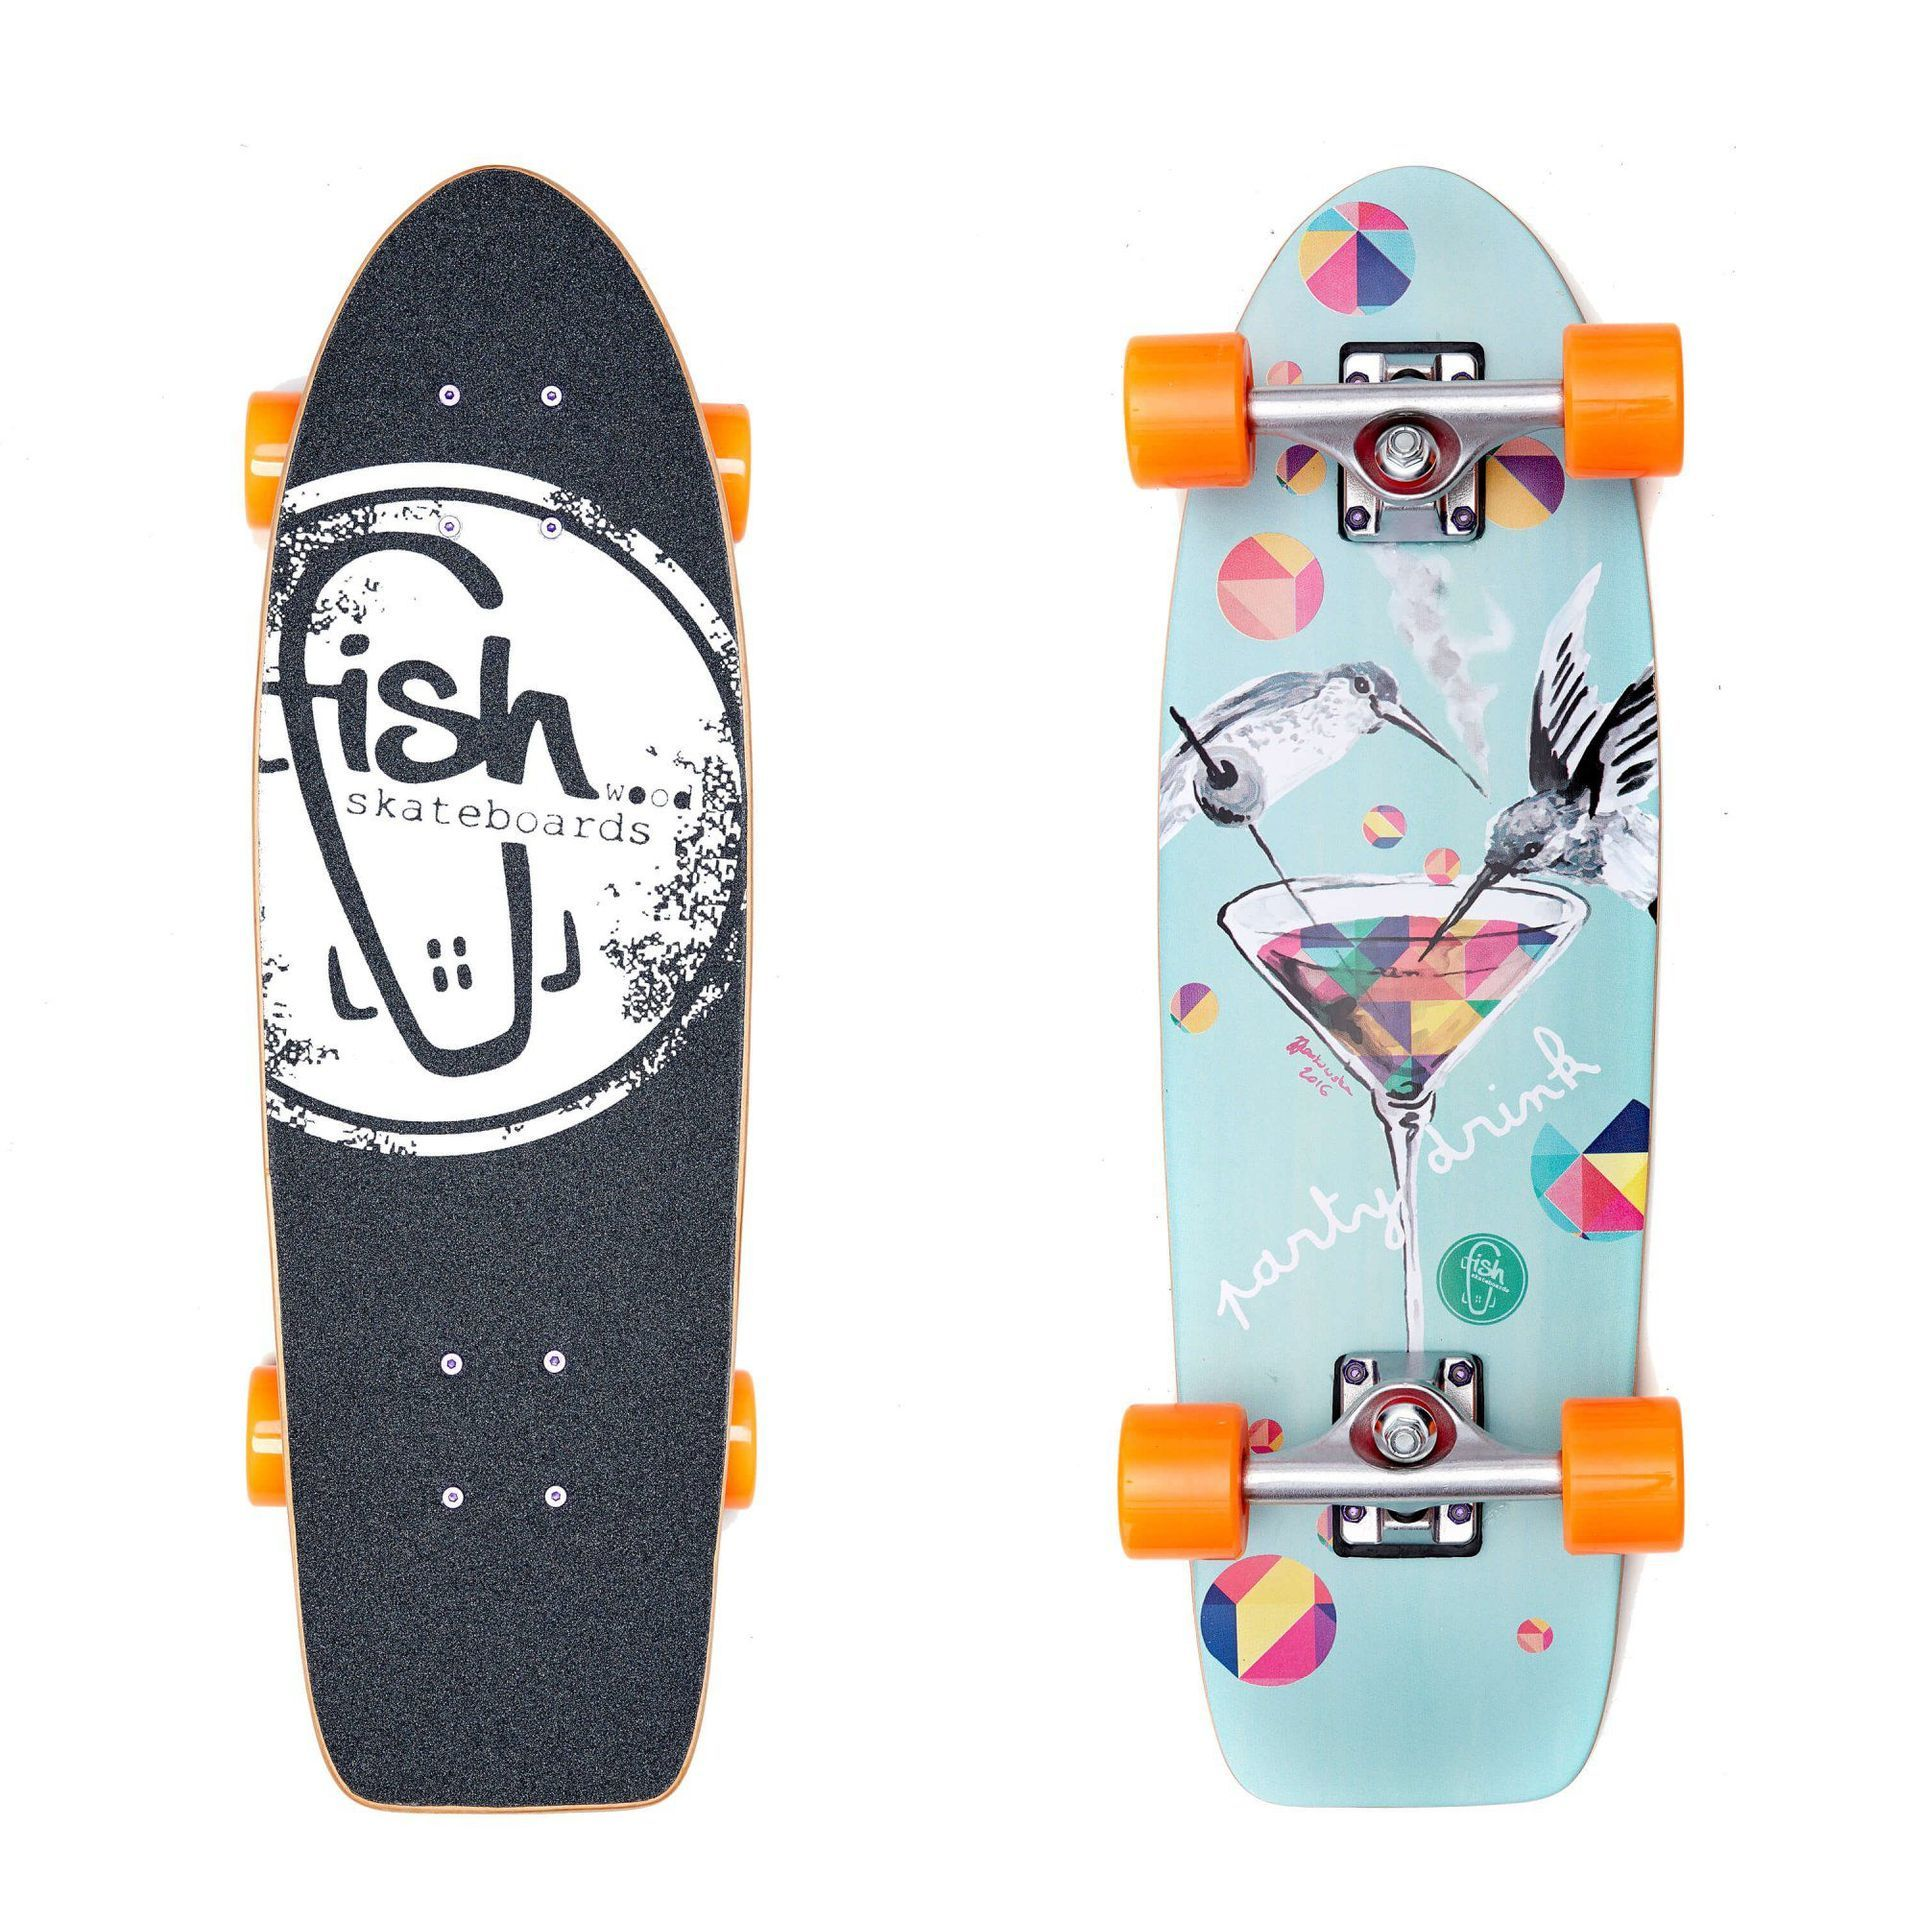 FISHBOARD FISH SKATEBOARDS CRUISER 26 PARTY|SILVER|ORANGE 1